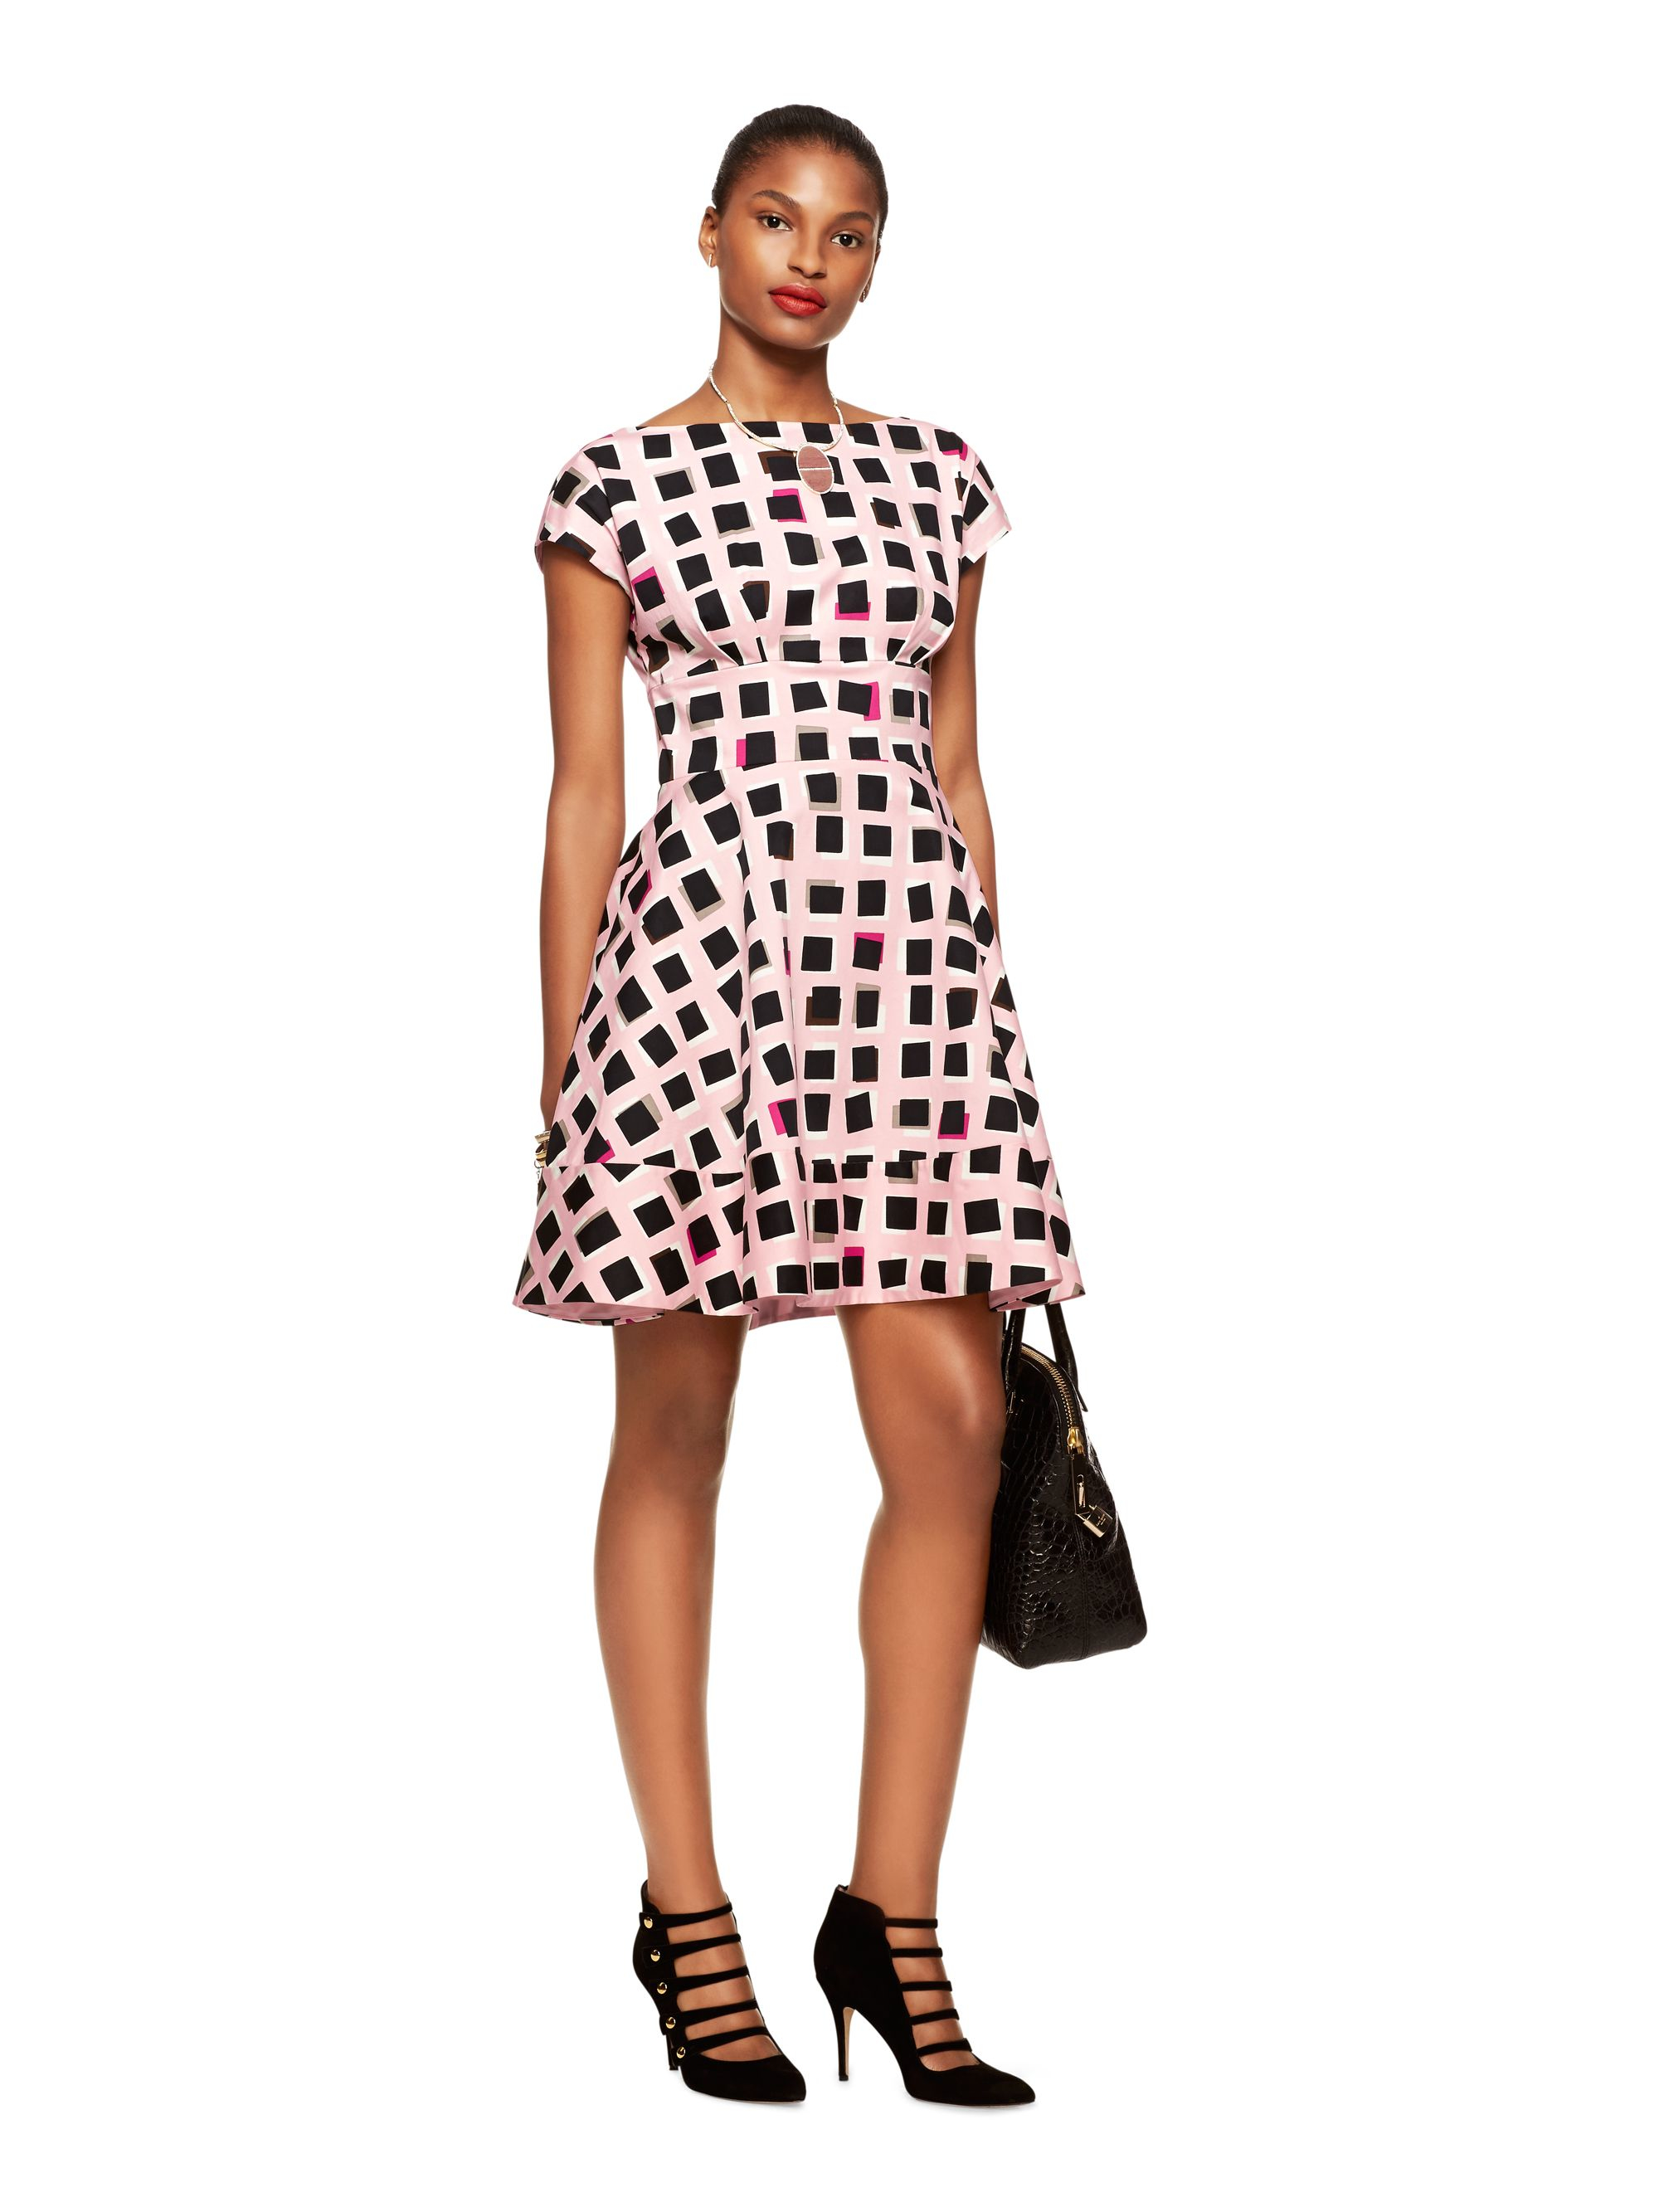 Kate Spade New York Abstract Sweets Fiorella Dress In Pink